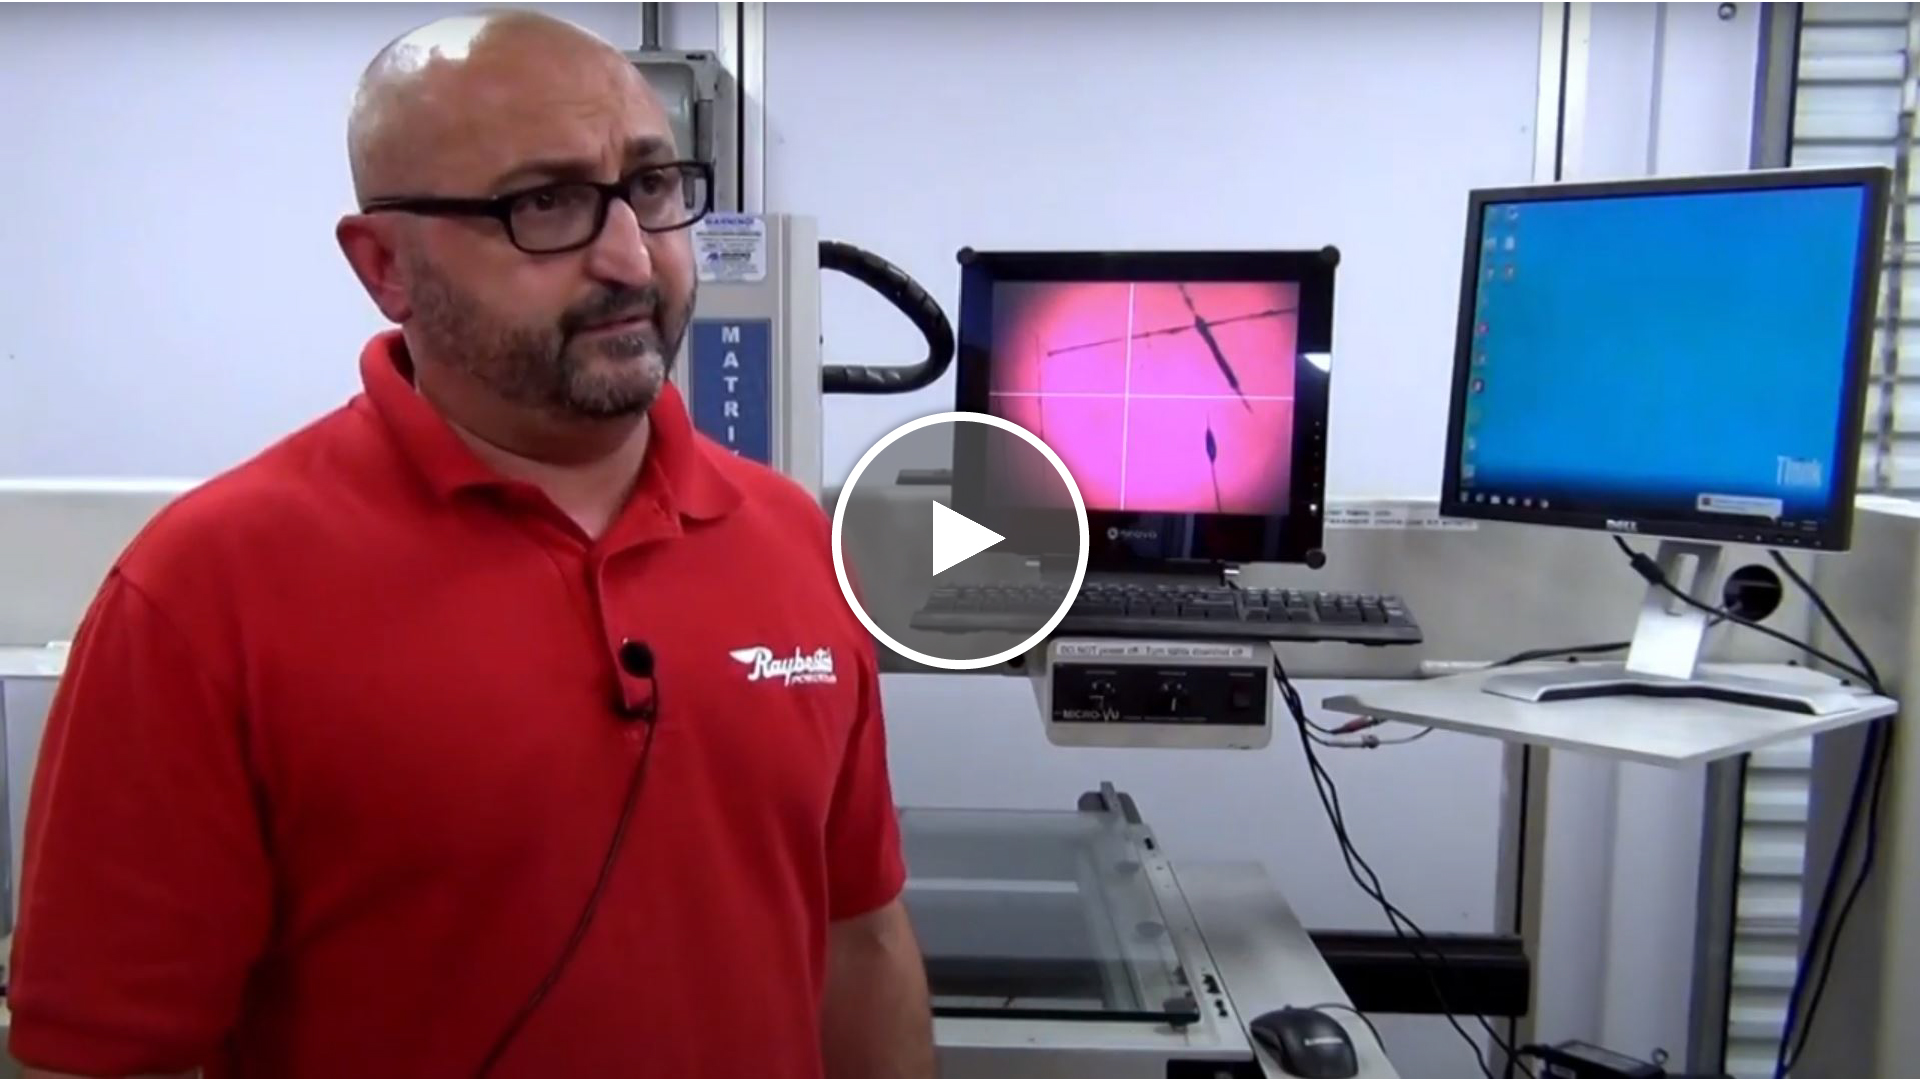 Raybestos Powertrain Interview Video Crawfordsville, IN Videography by Media Wrench LLC